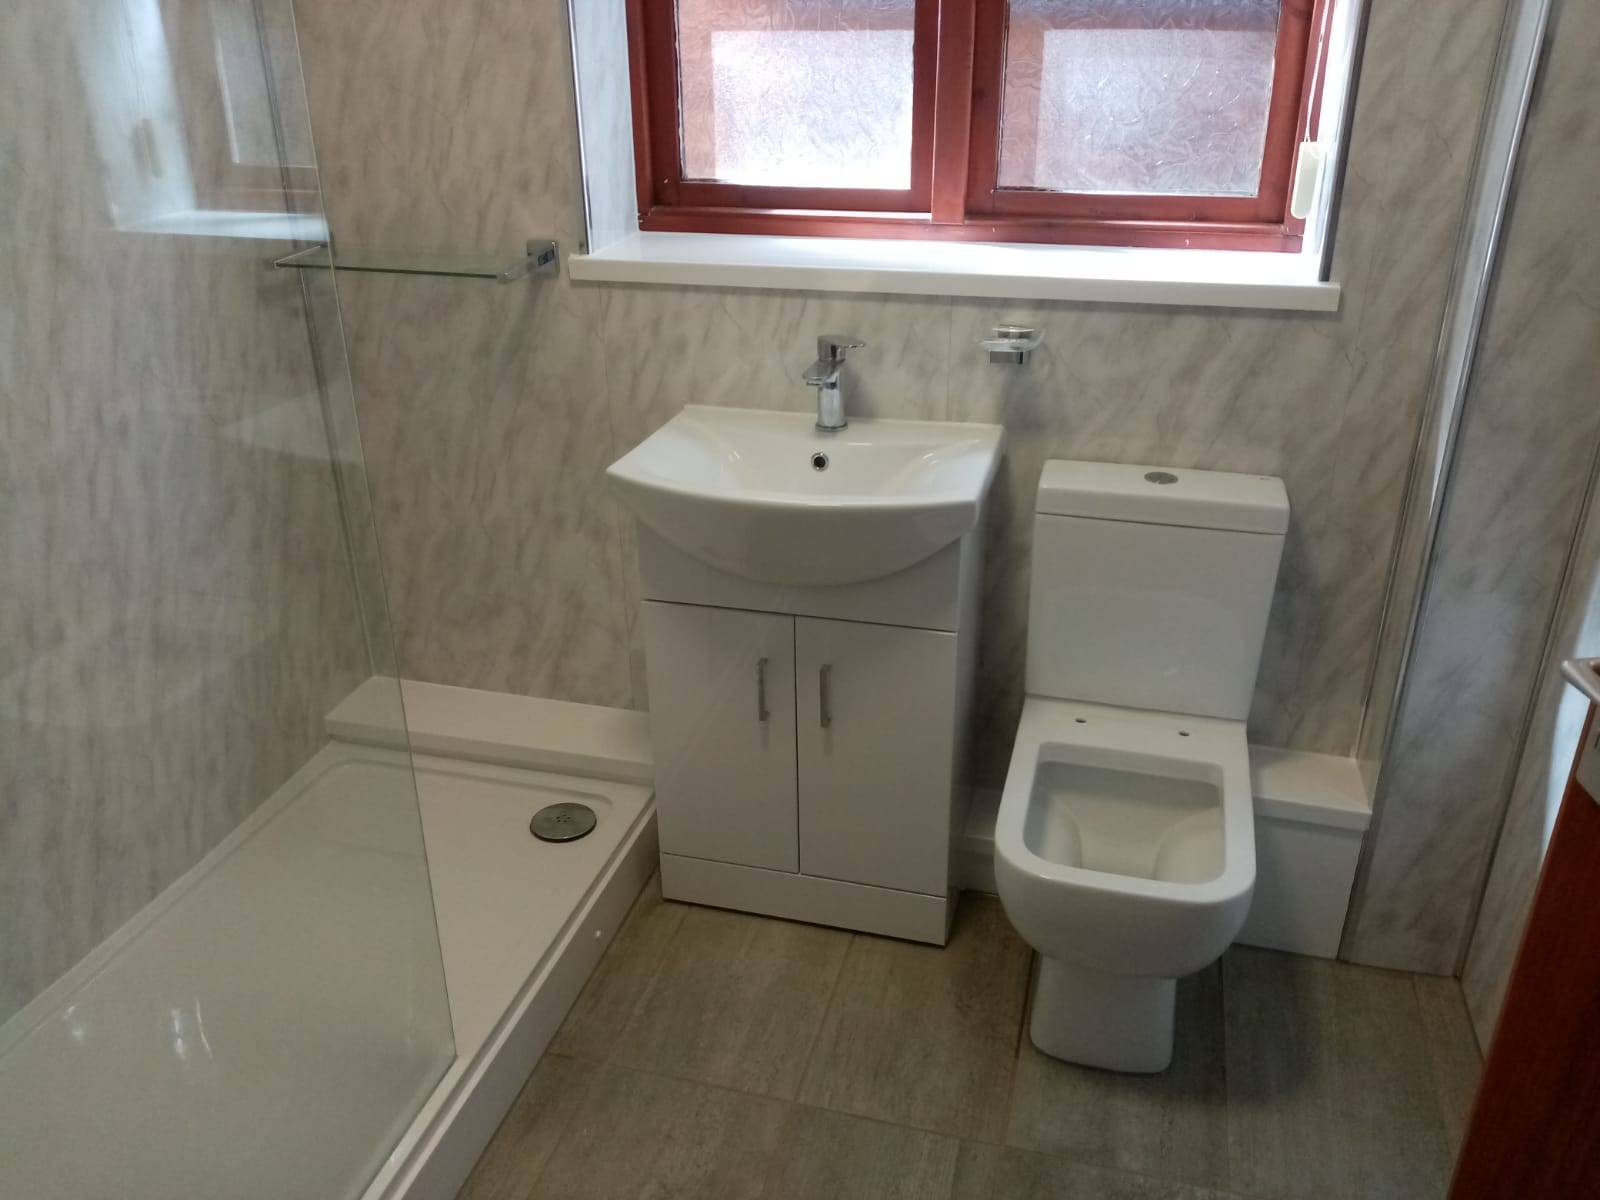 Mr and Mrs Rothwell's Bathroom installation, Hucknall